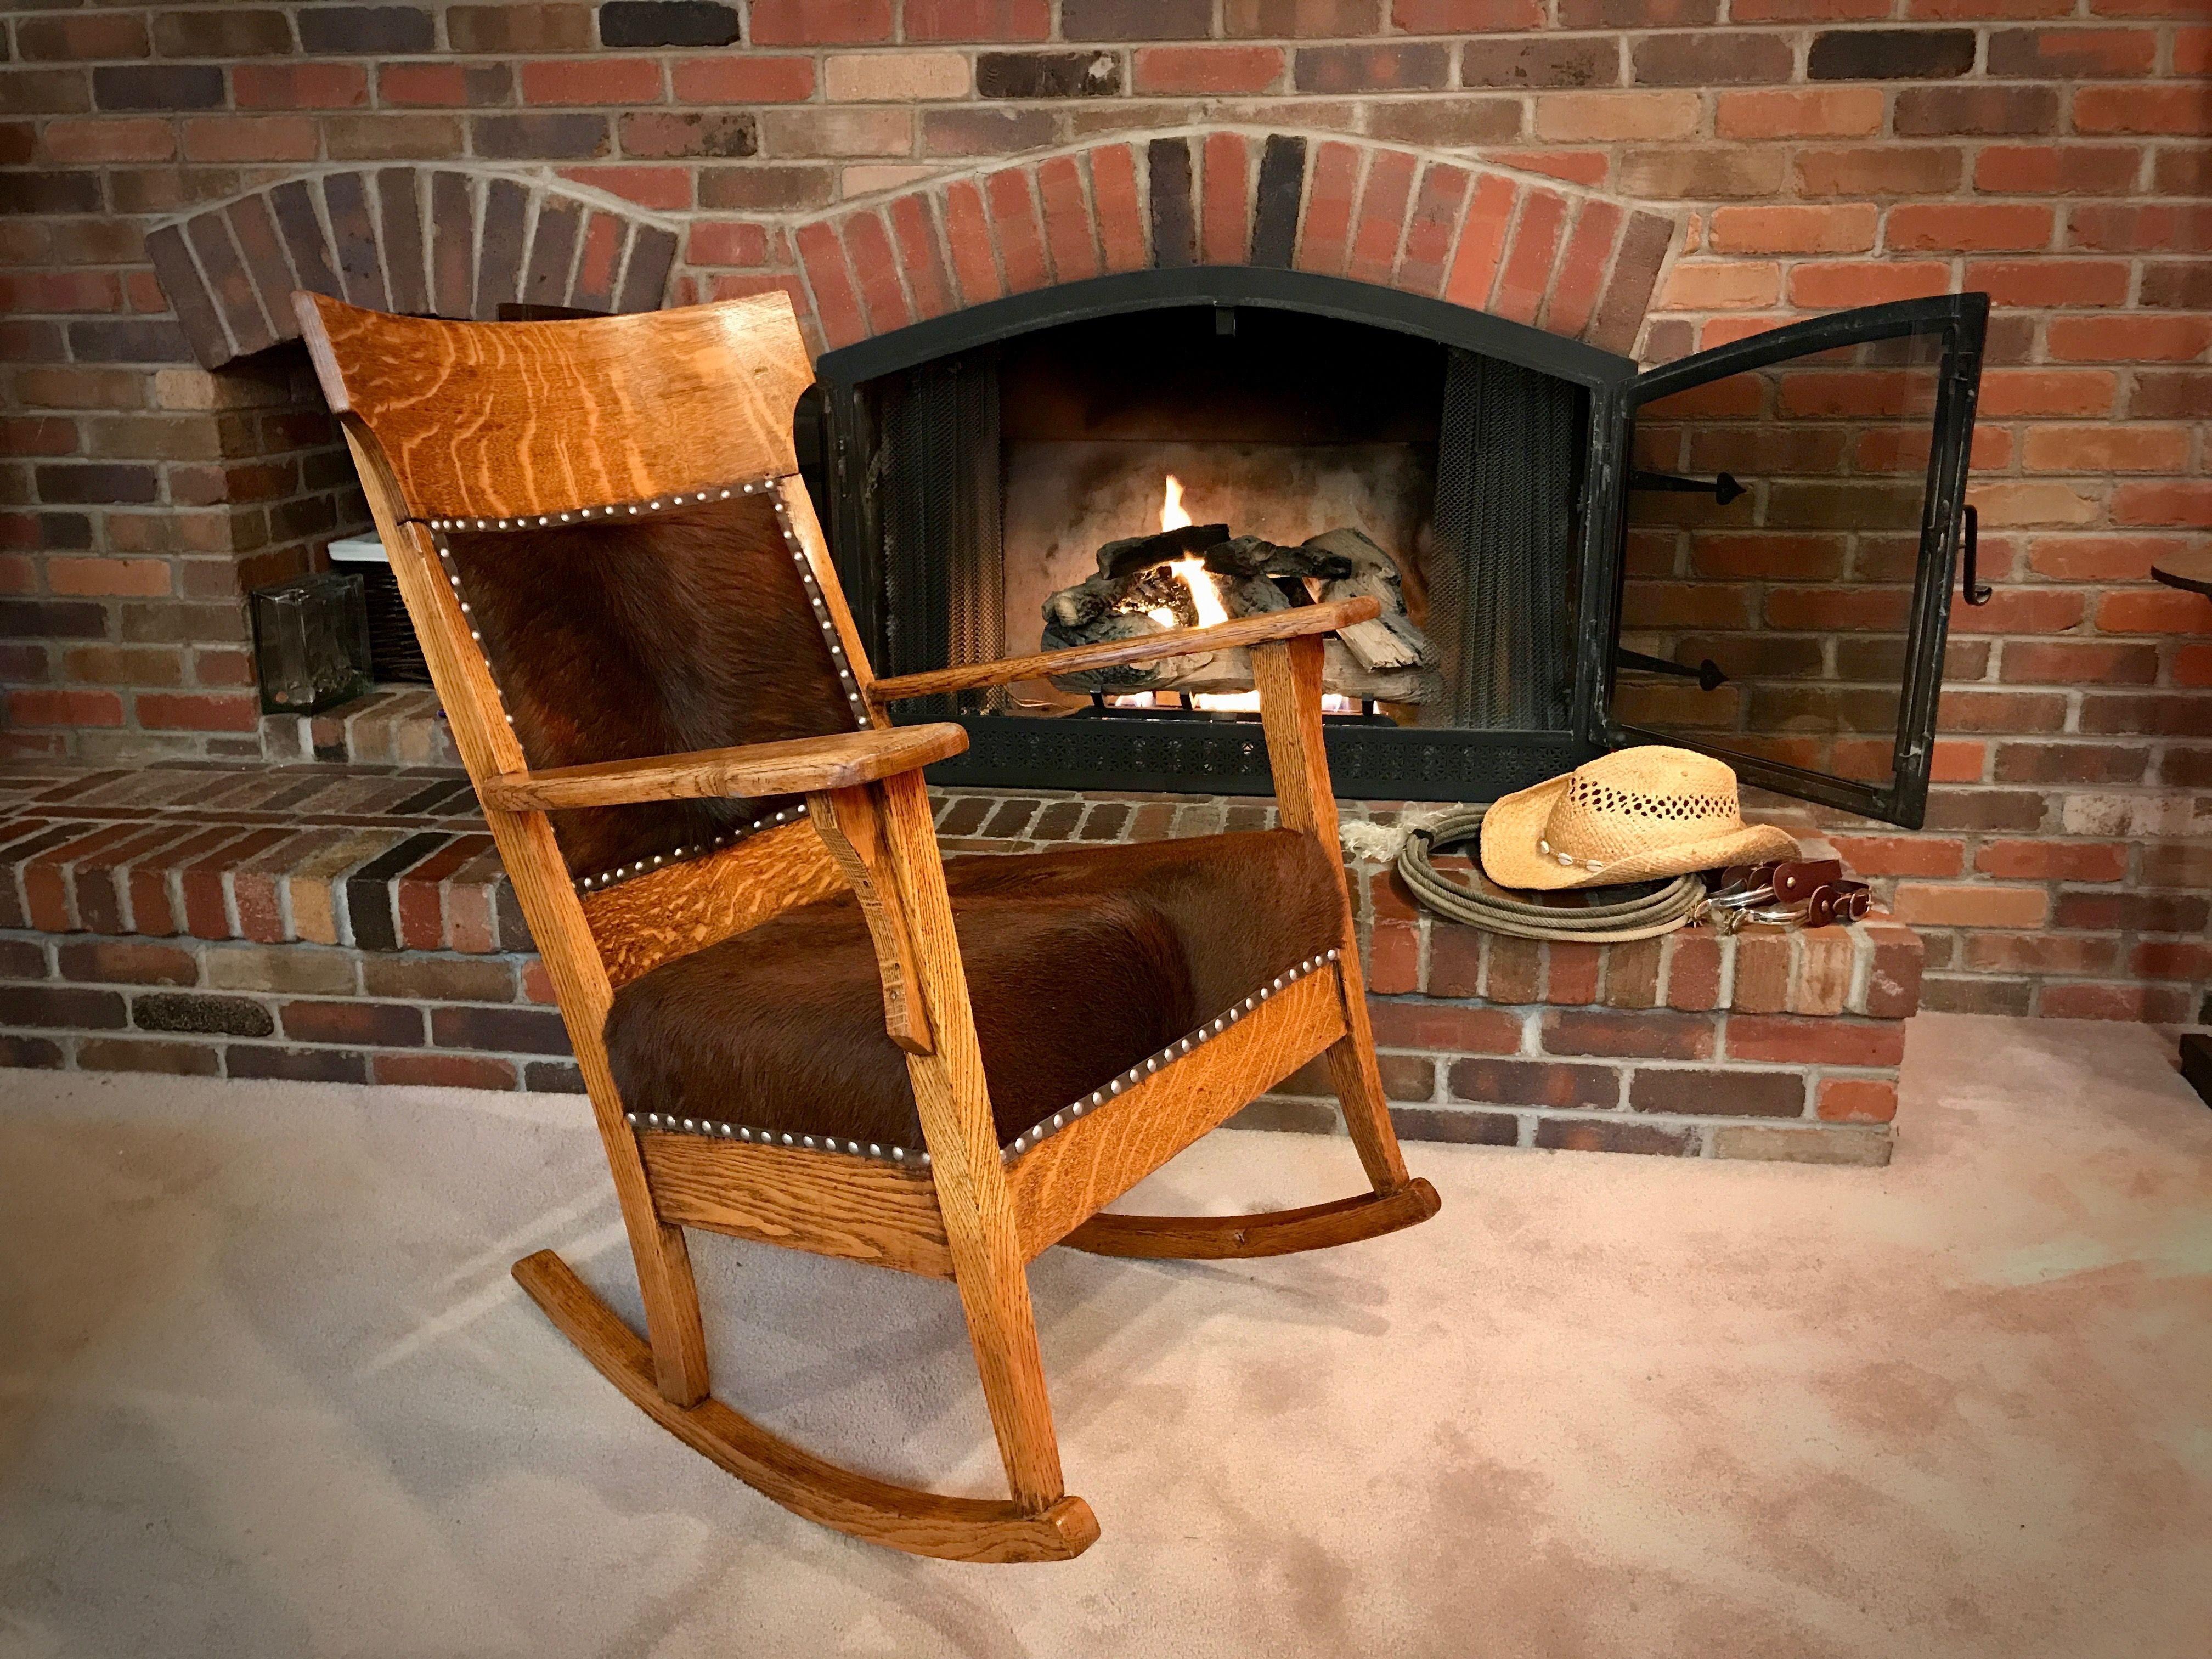 Rockin Mountain Hides Rocking Chair With A Western Flair And Covered With Awesome Cowhides Rocking Chair Antique Rocking Chairs Chair